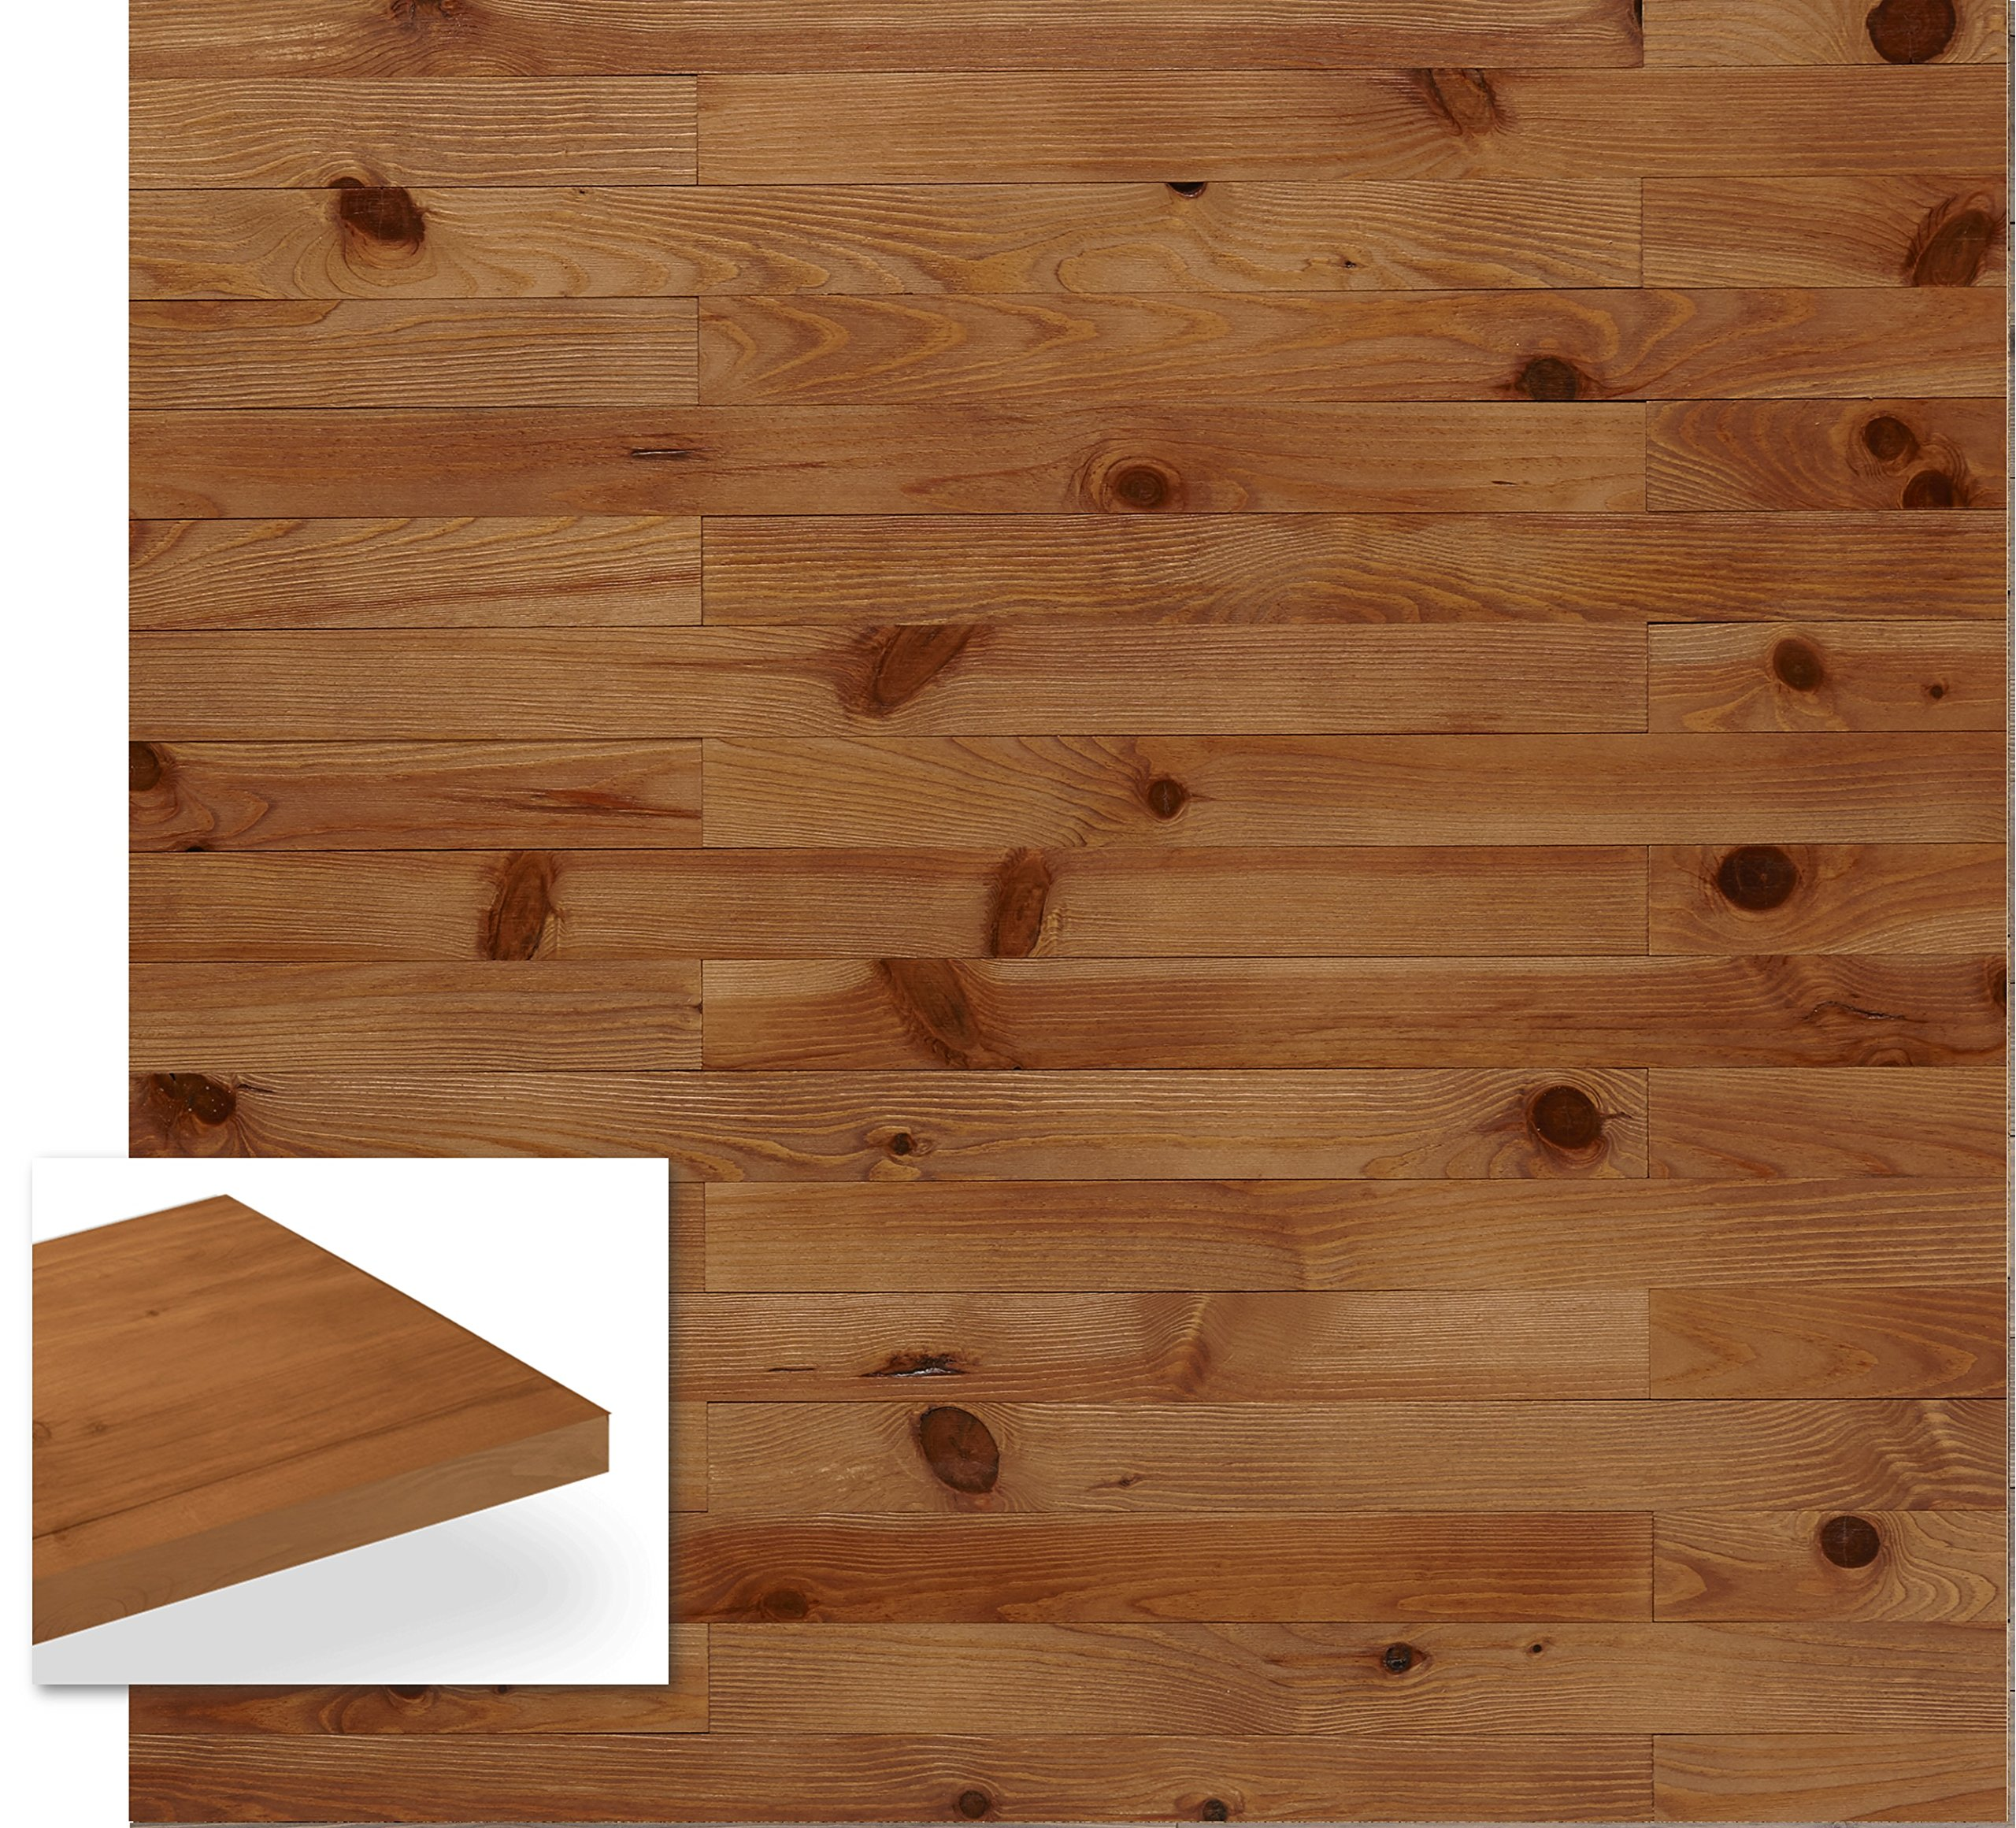 Timberwall - Nordic Collection Cool Breeze - DIY Solid Wood Wall Panel - Easy Peel and Stick Application - 10.8 Sq Ft